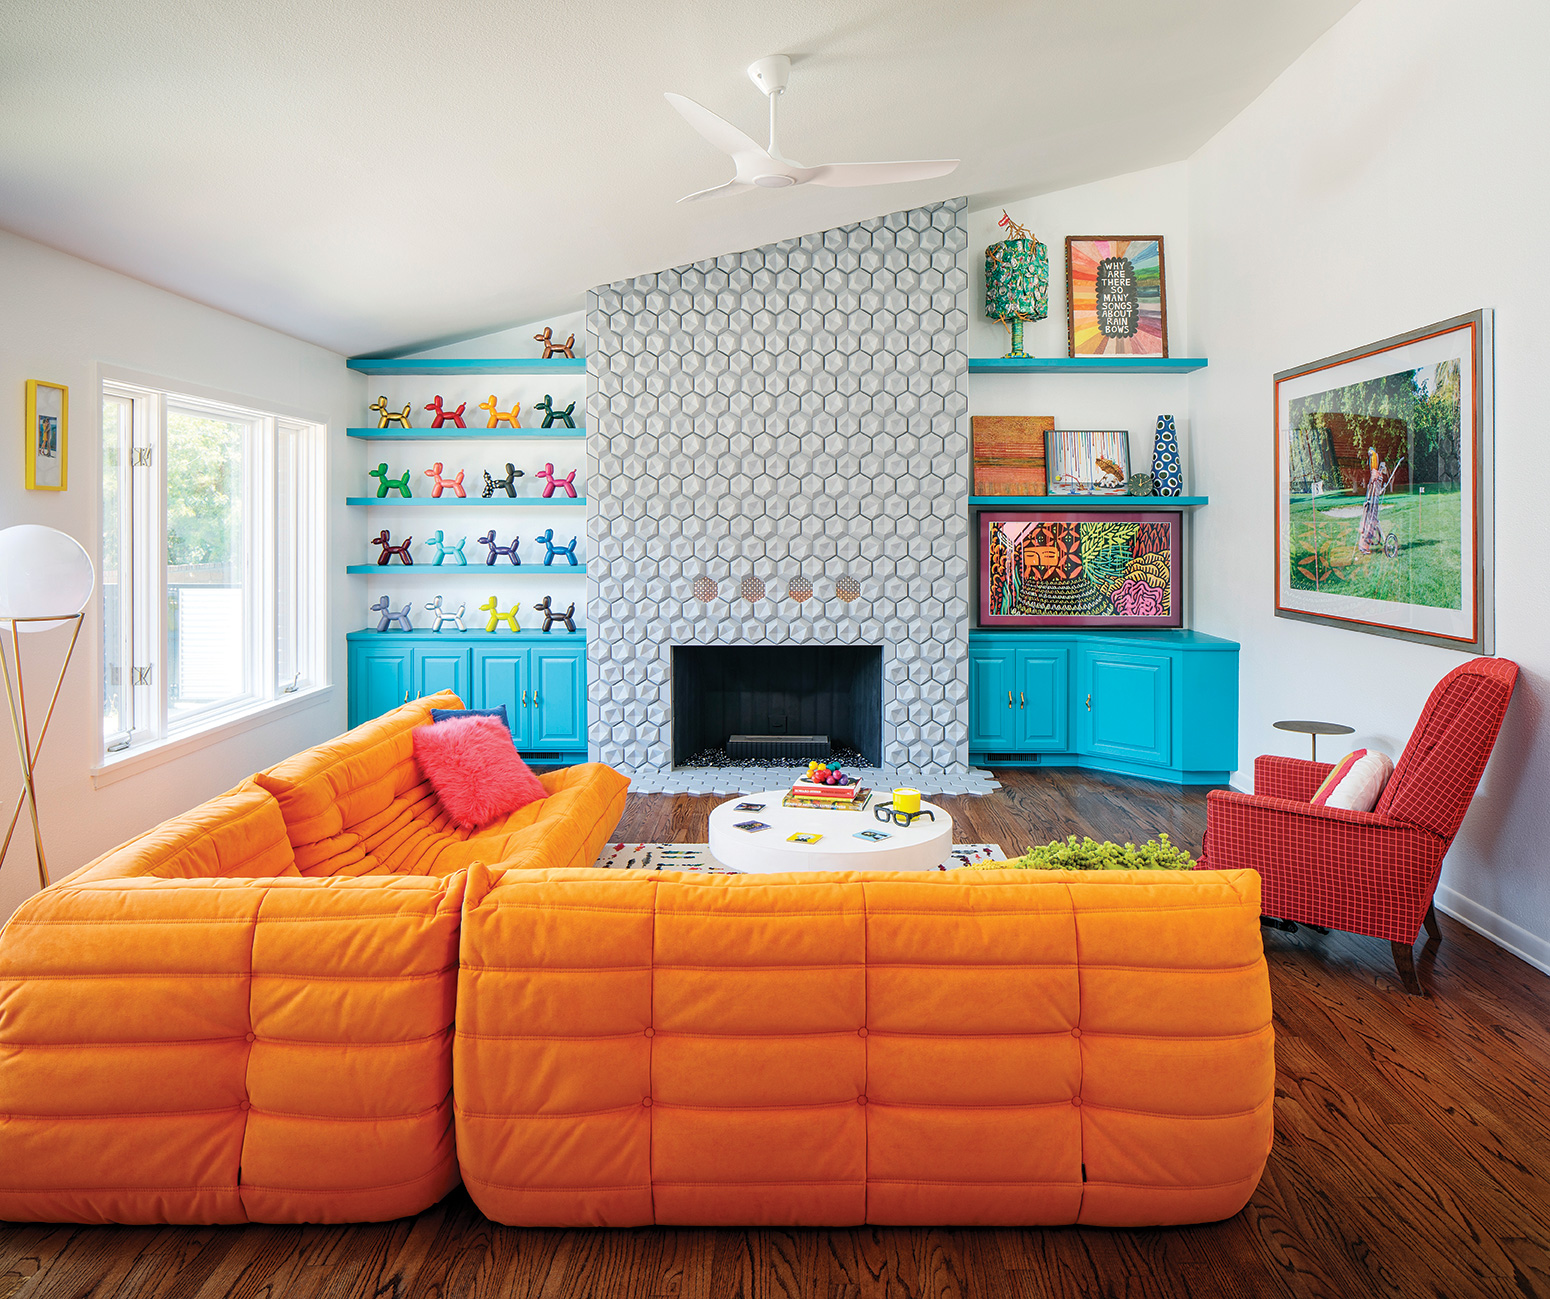 jenna pilant living room bright colored furniture and shelving